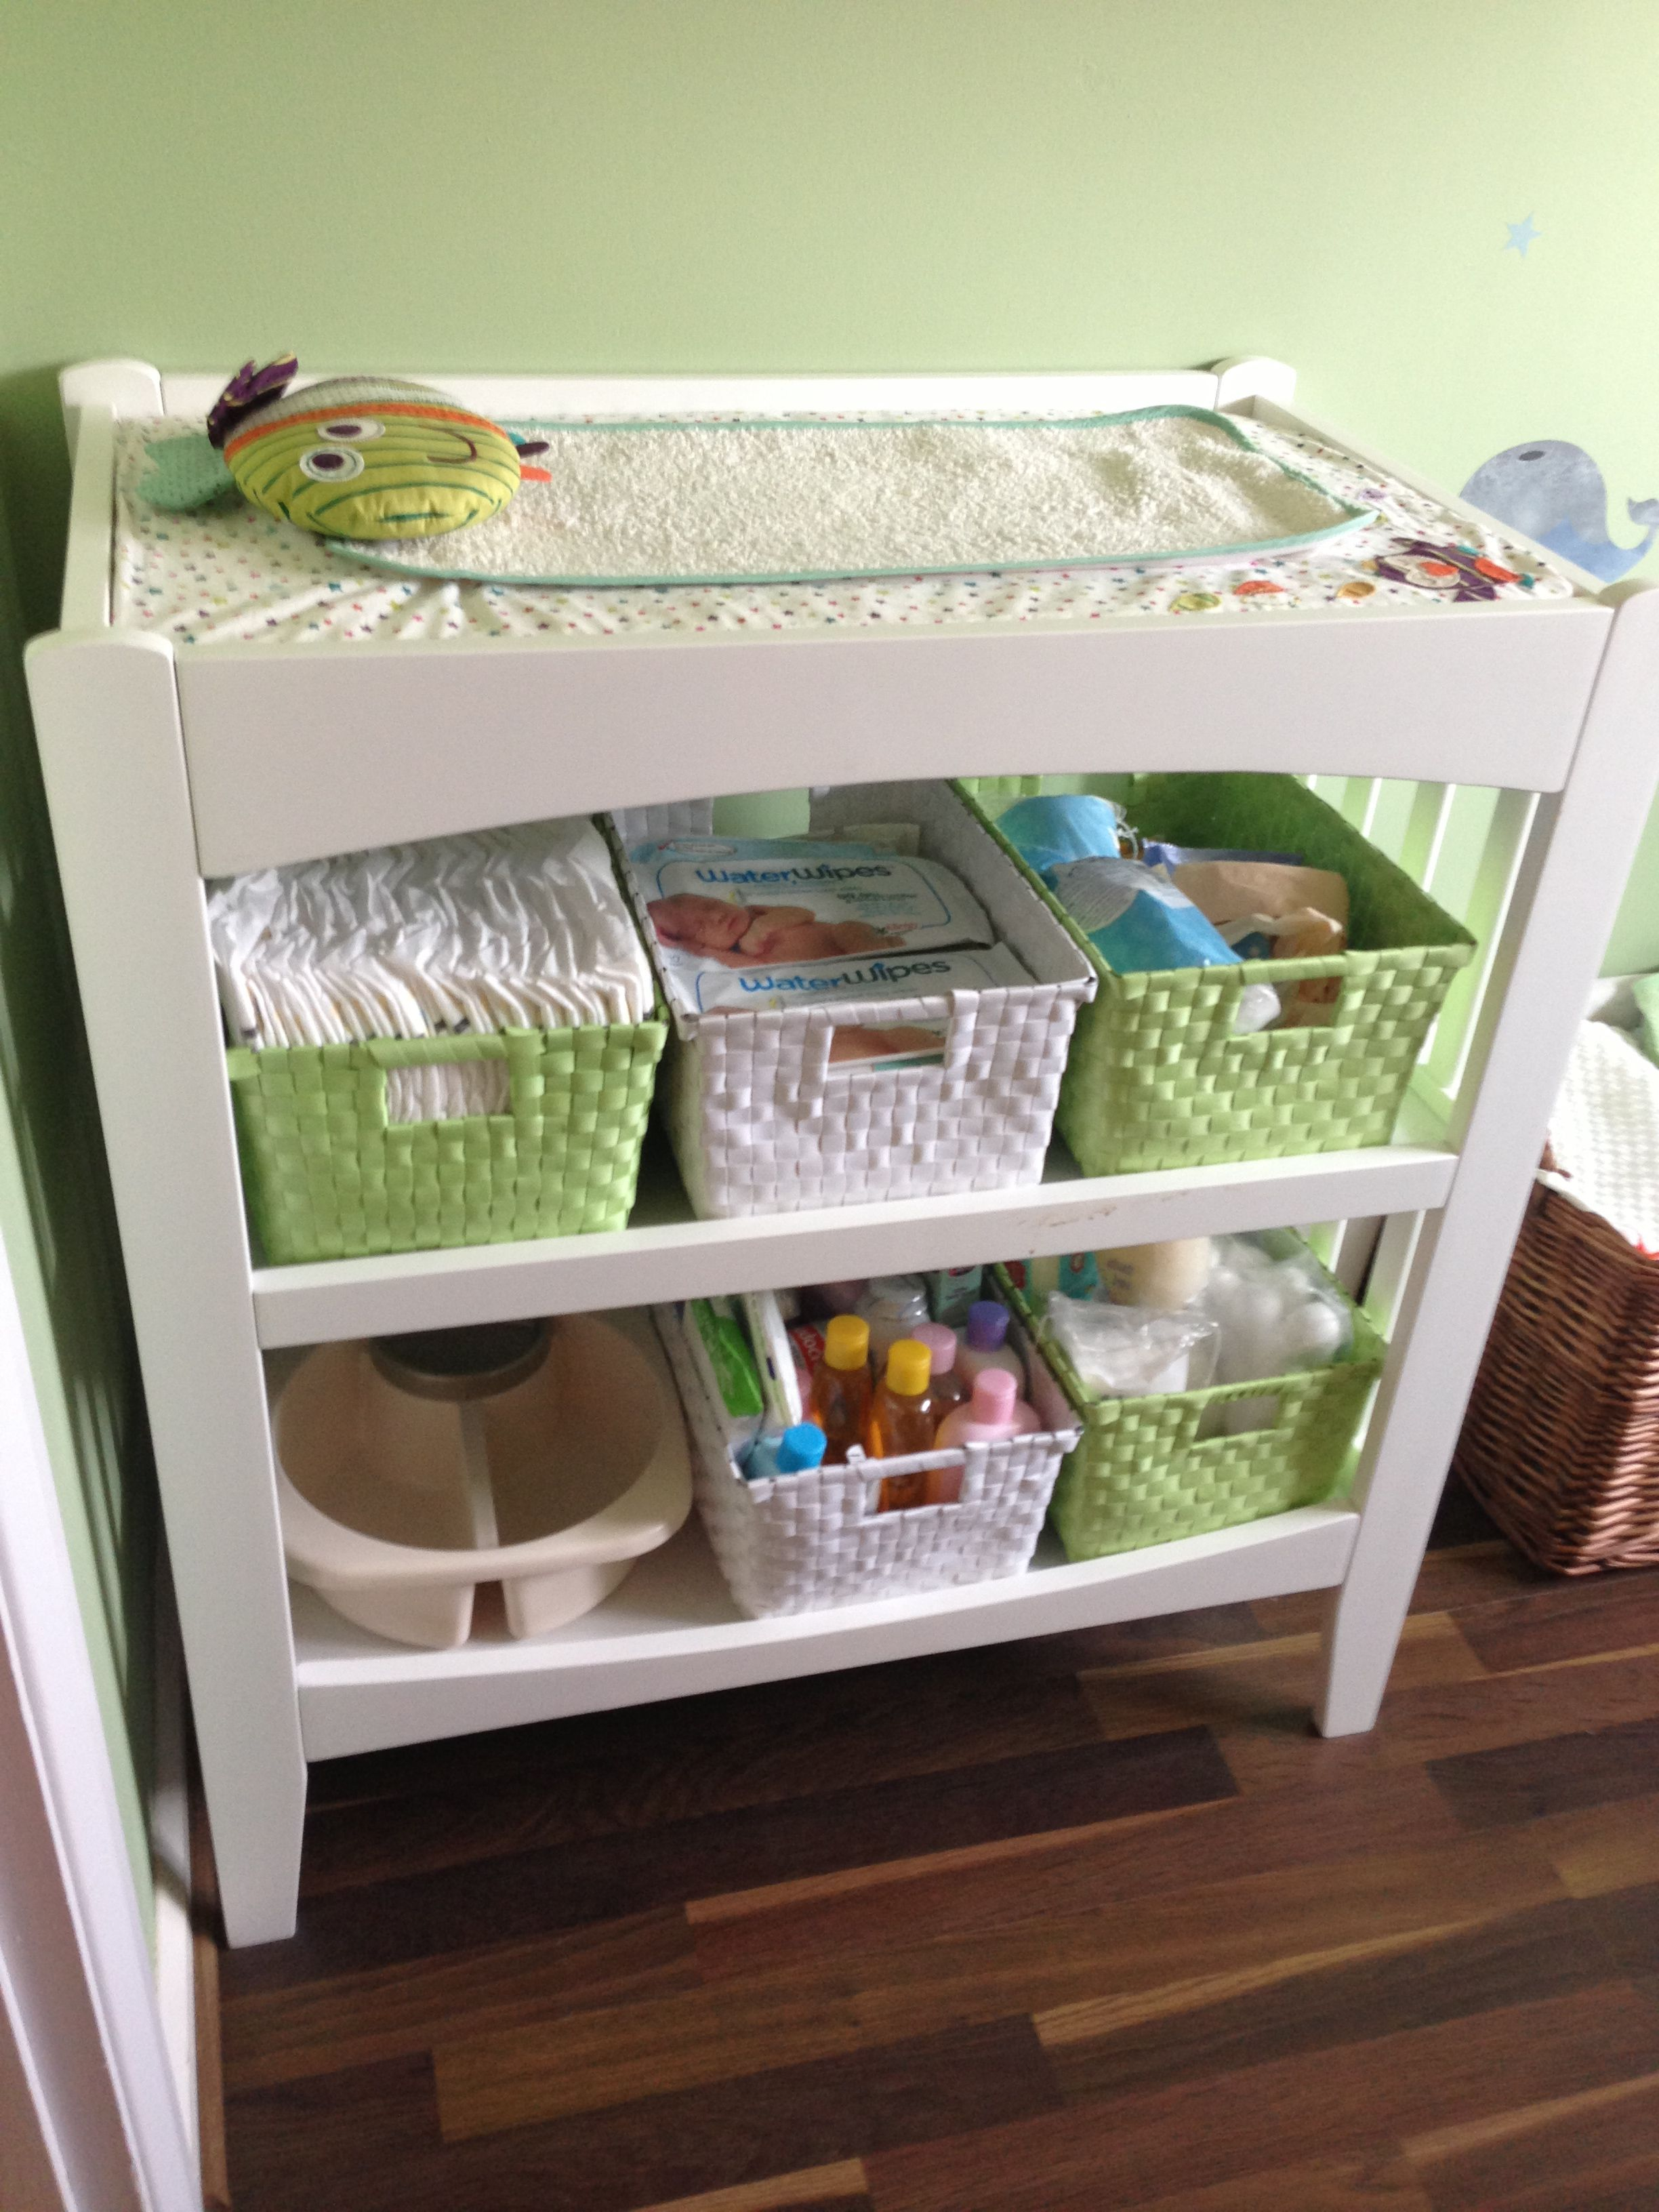 Baby Change Station Storage And Changing Table With Lots Of Room For All The Necessities Baby Changing Baby Changing Tables Baby Changing Station